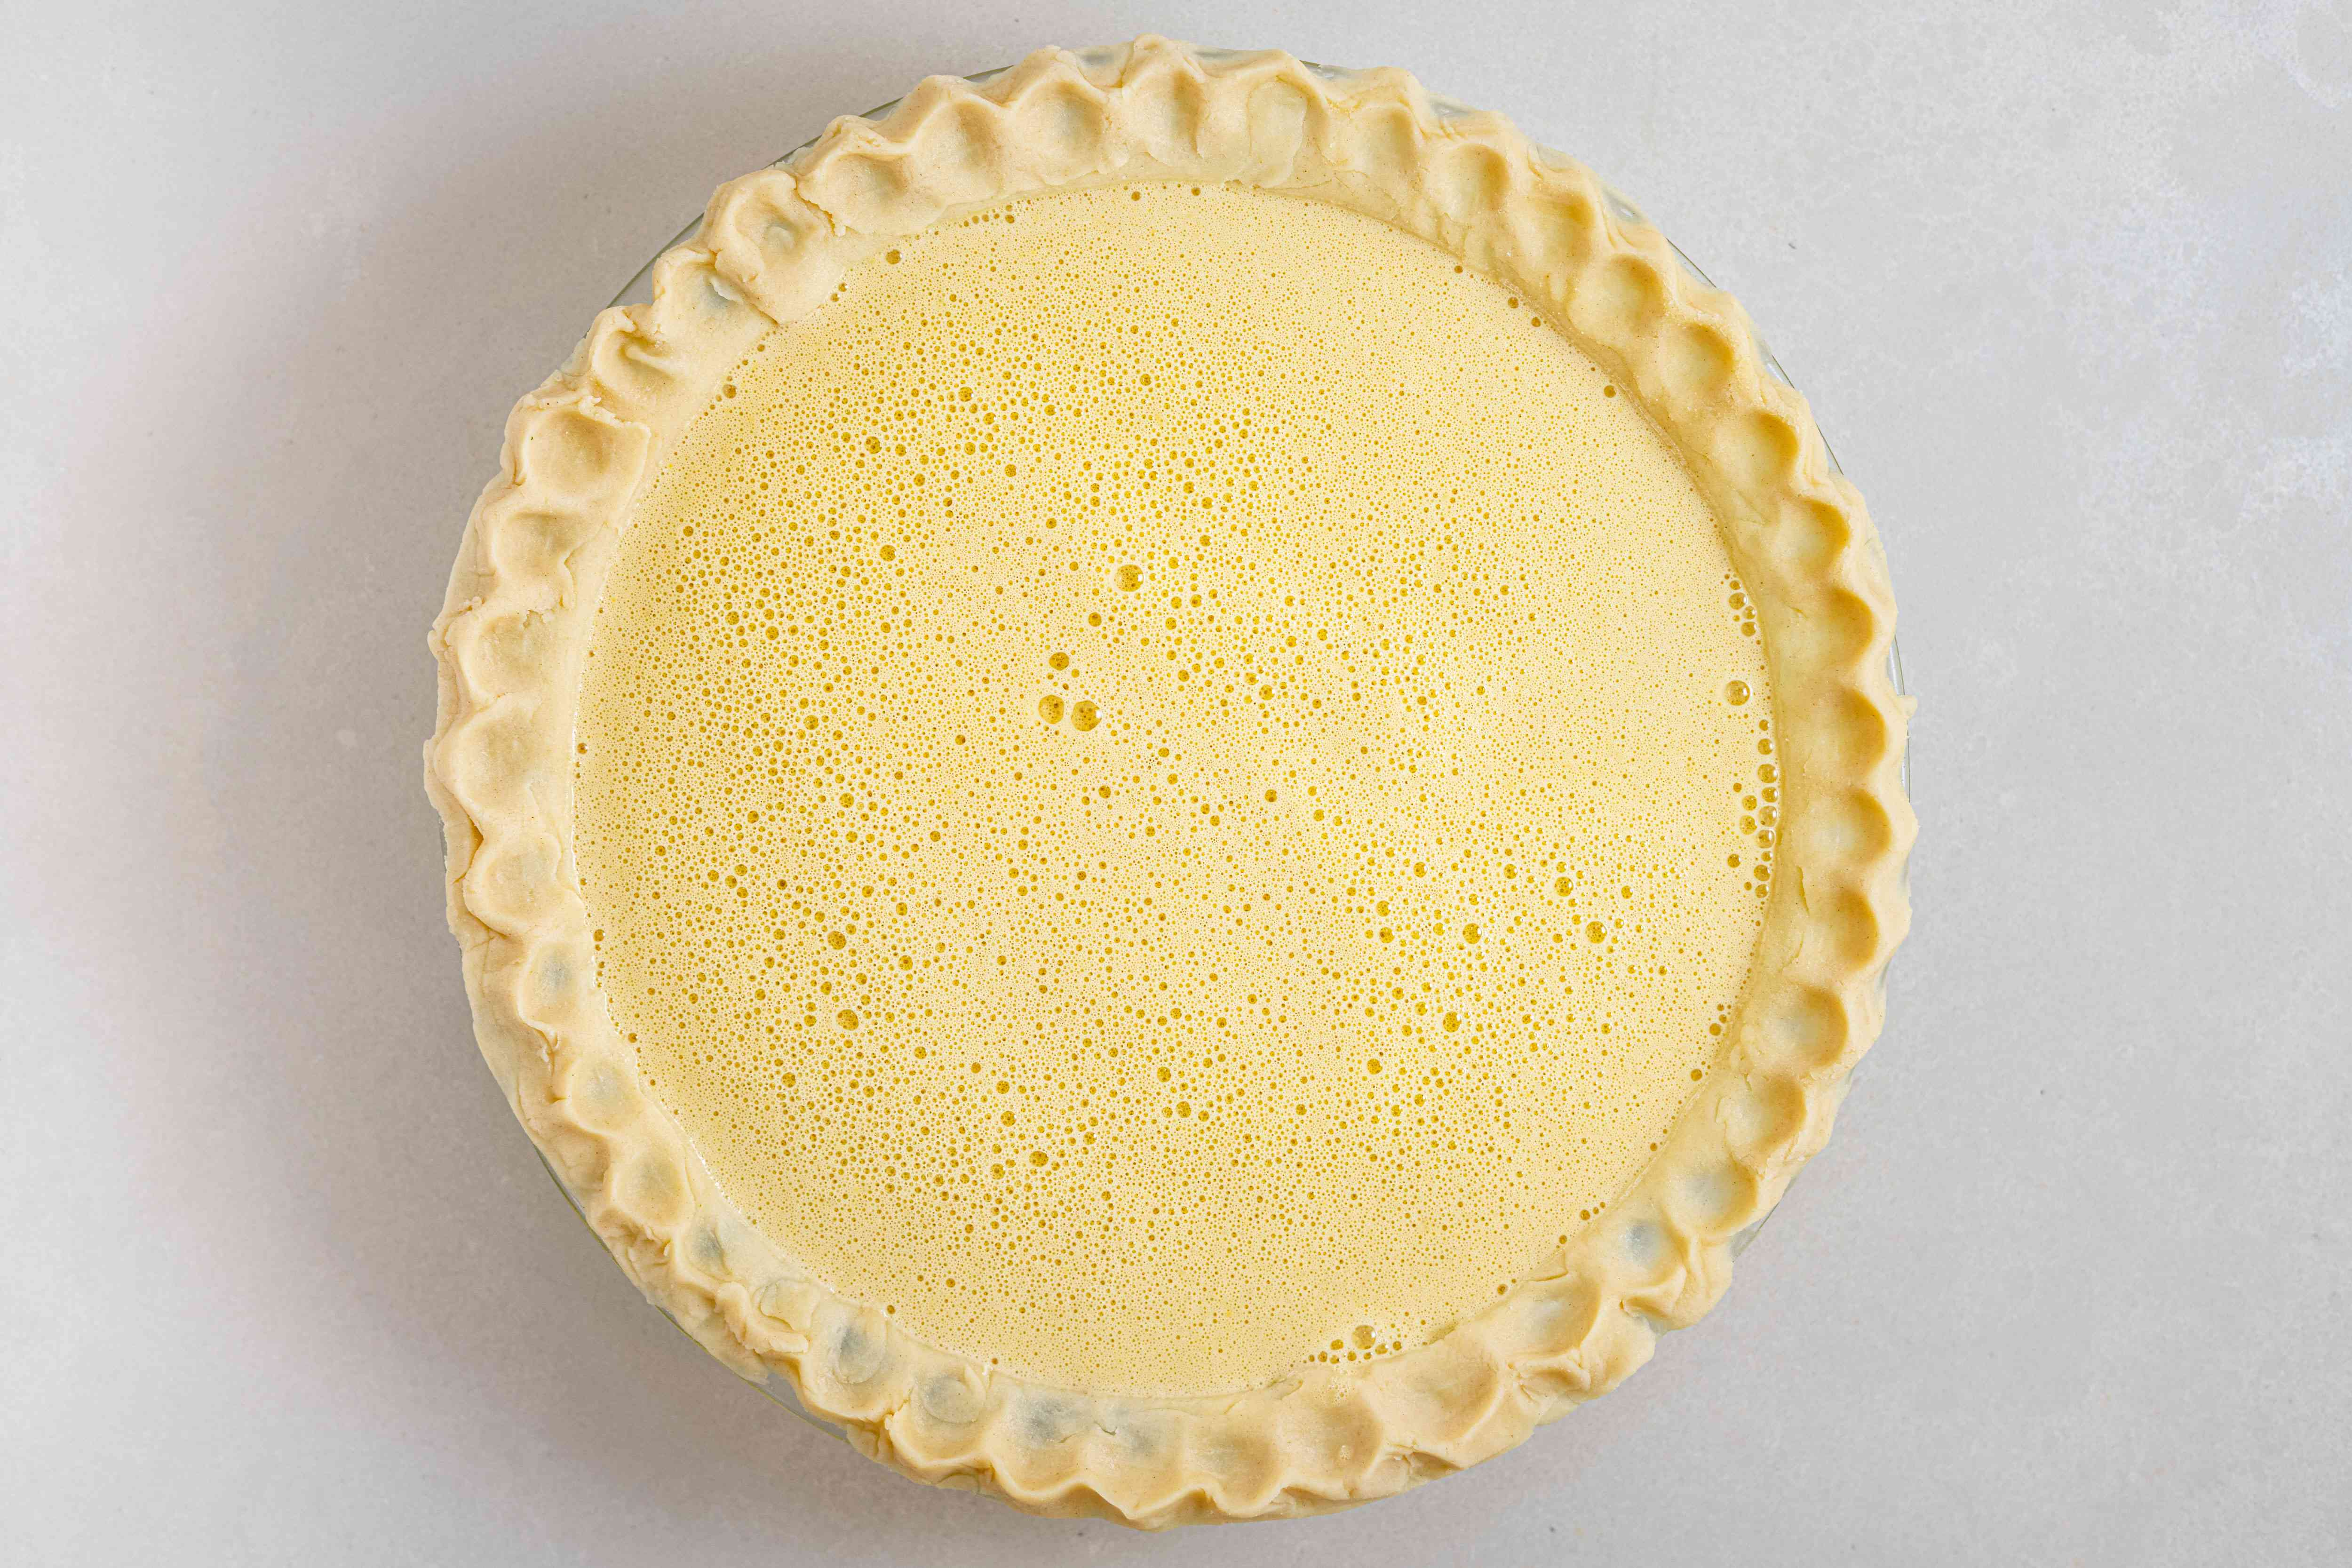 Pour the egg mixture into the prepared crust